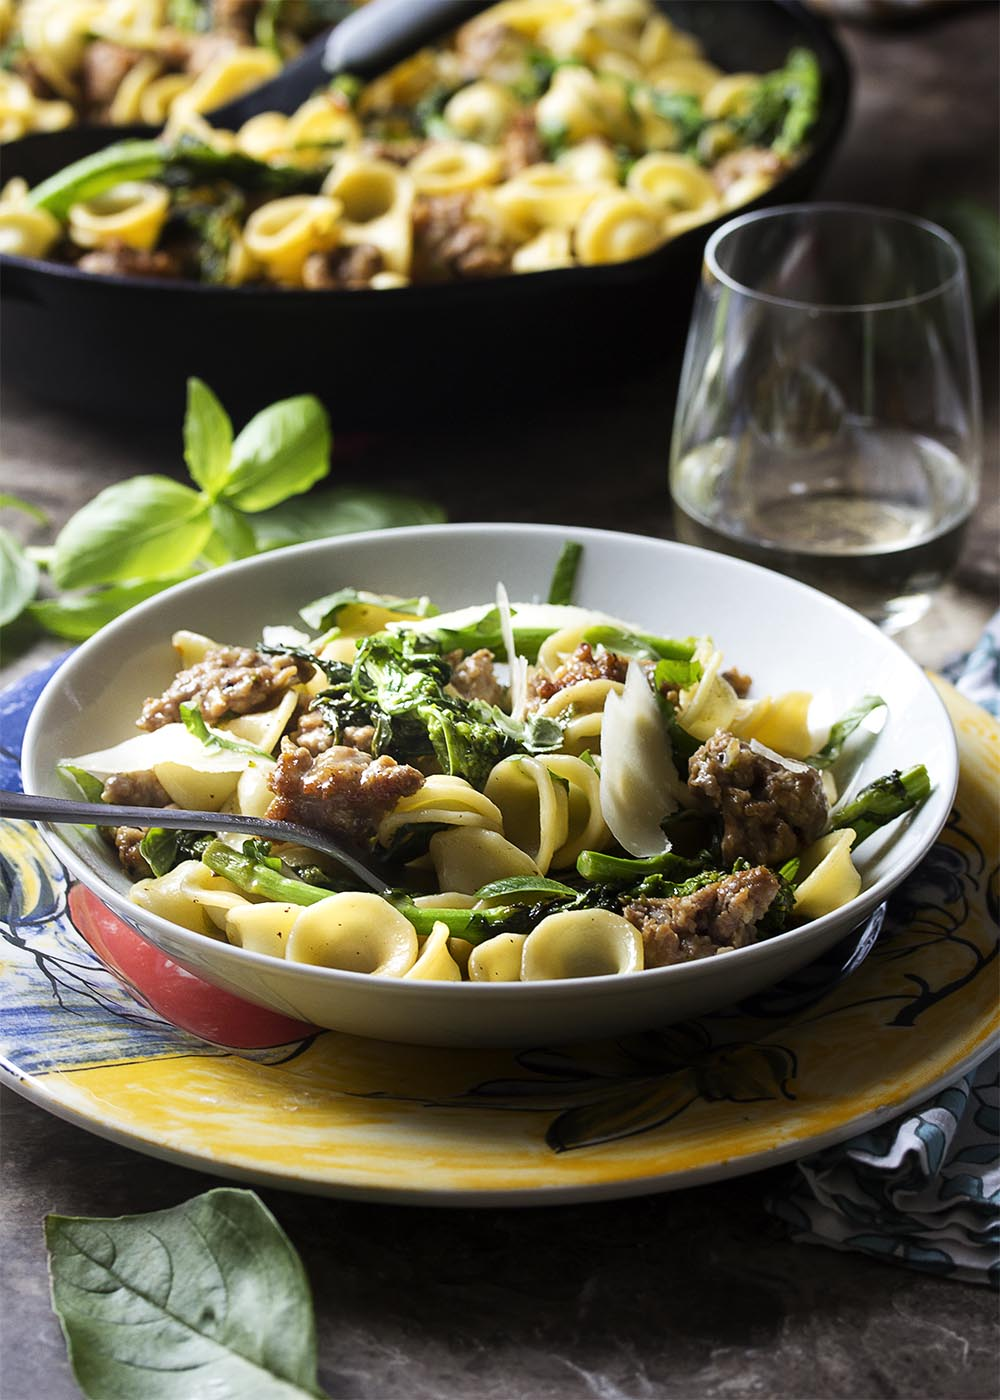 For a healthy and easy weeknight dinner this Italian recipe for orecchiette pasta, broccoli rabe, and sausage delivers flavor and gets dinner on the table fast. | justalittlebitofbacon.com